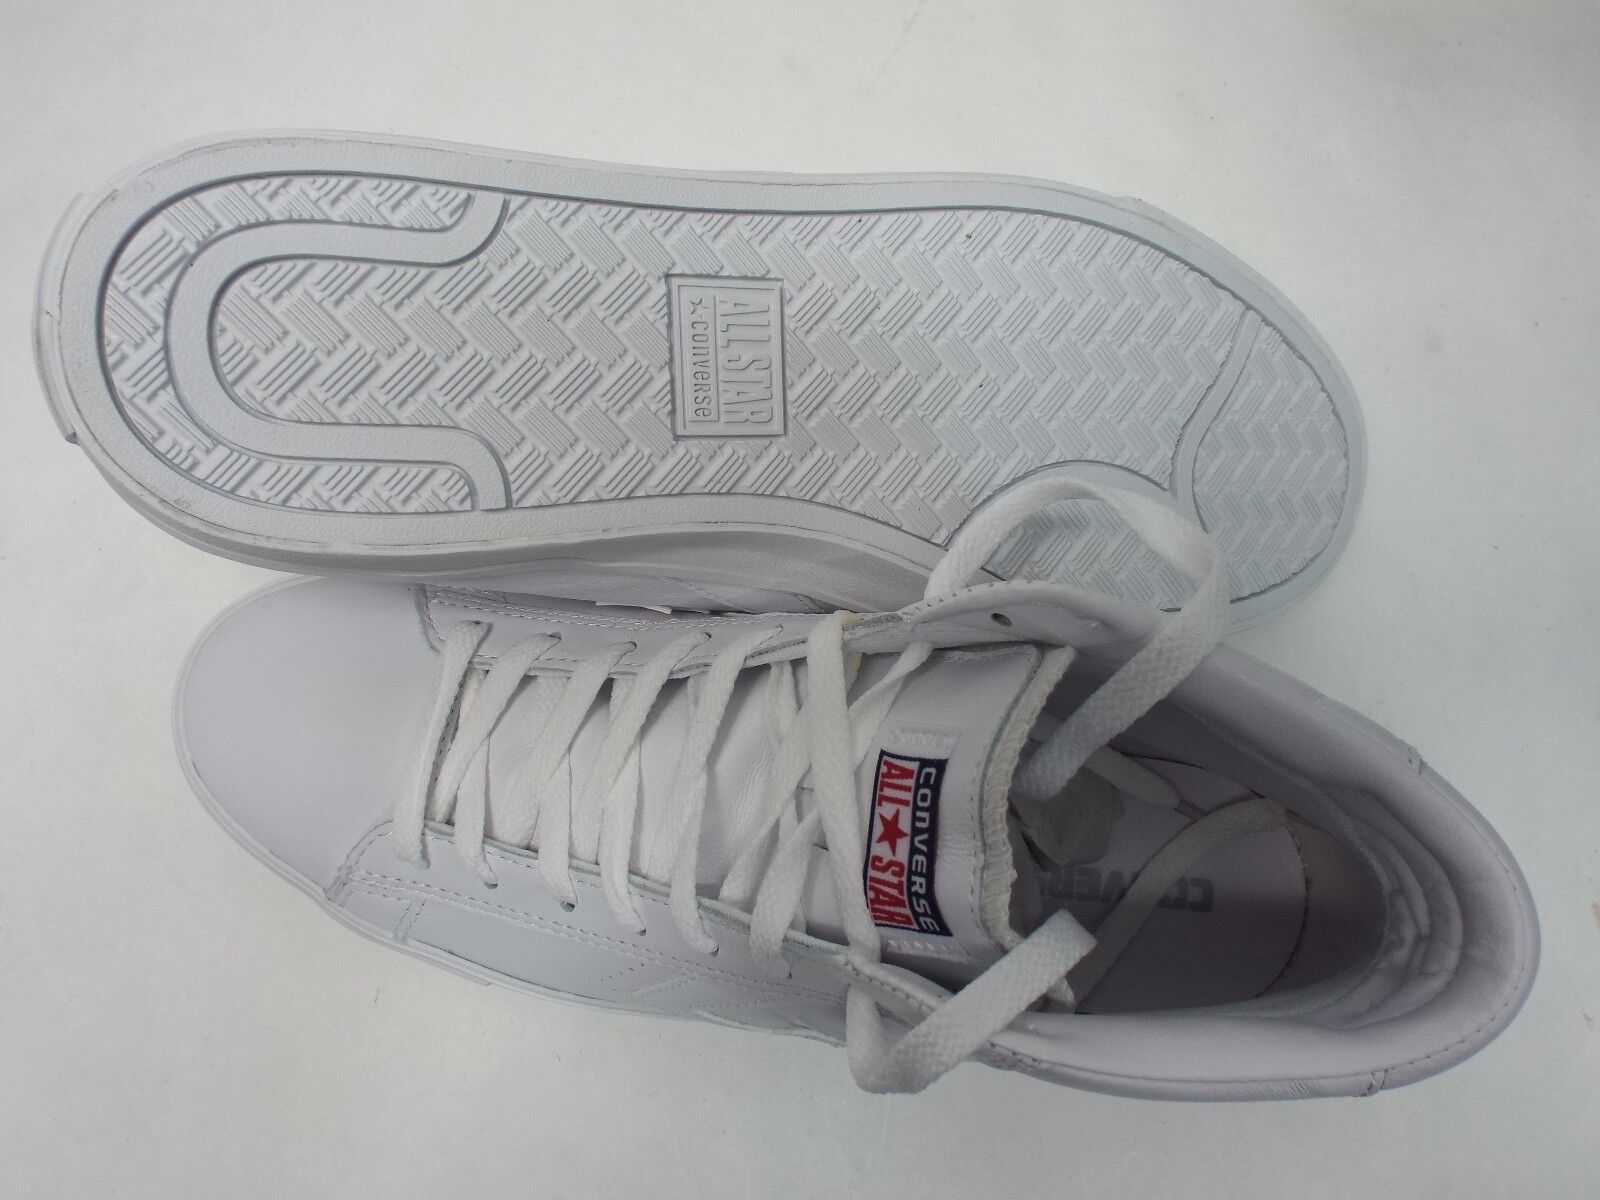 New hommes 11 Converse Star Player Chaussures Pro Leather Mid blanc Chaussures Player 136764C 65 1a285d